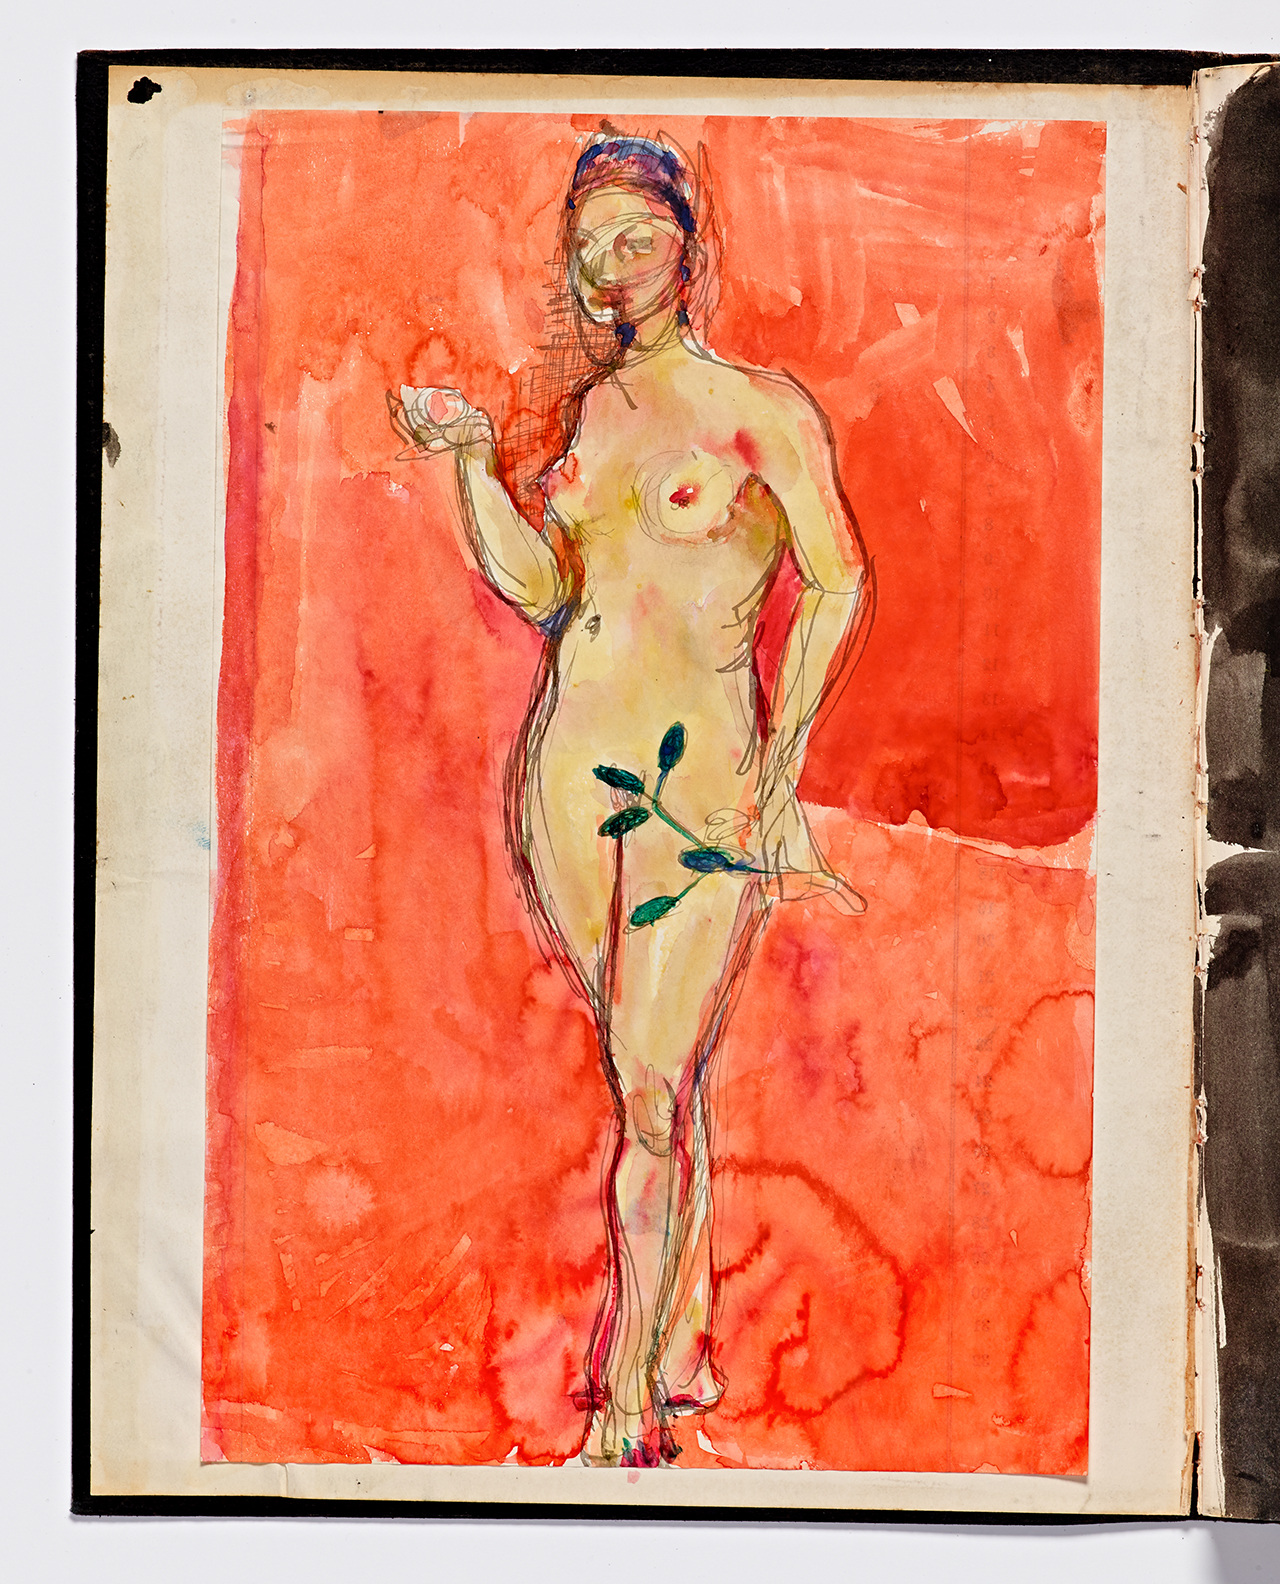 Richard Diebenkorn, Untitled from Sketchbook #24, inside front cover (1943–93), watercolor on paper, Cantor Arts Center collection, Gift of Phyllis Diebenkorn (© The Richard Diebenkorn Foundation)